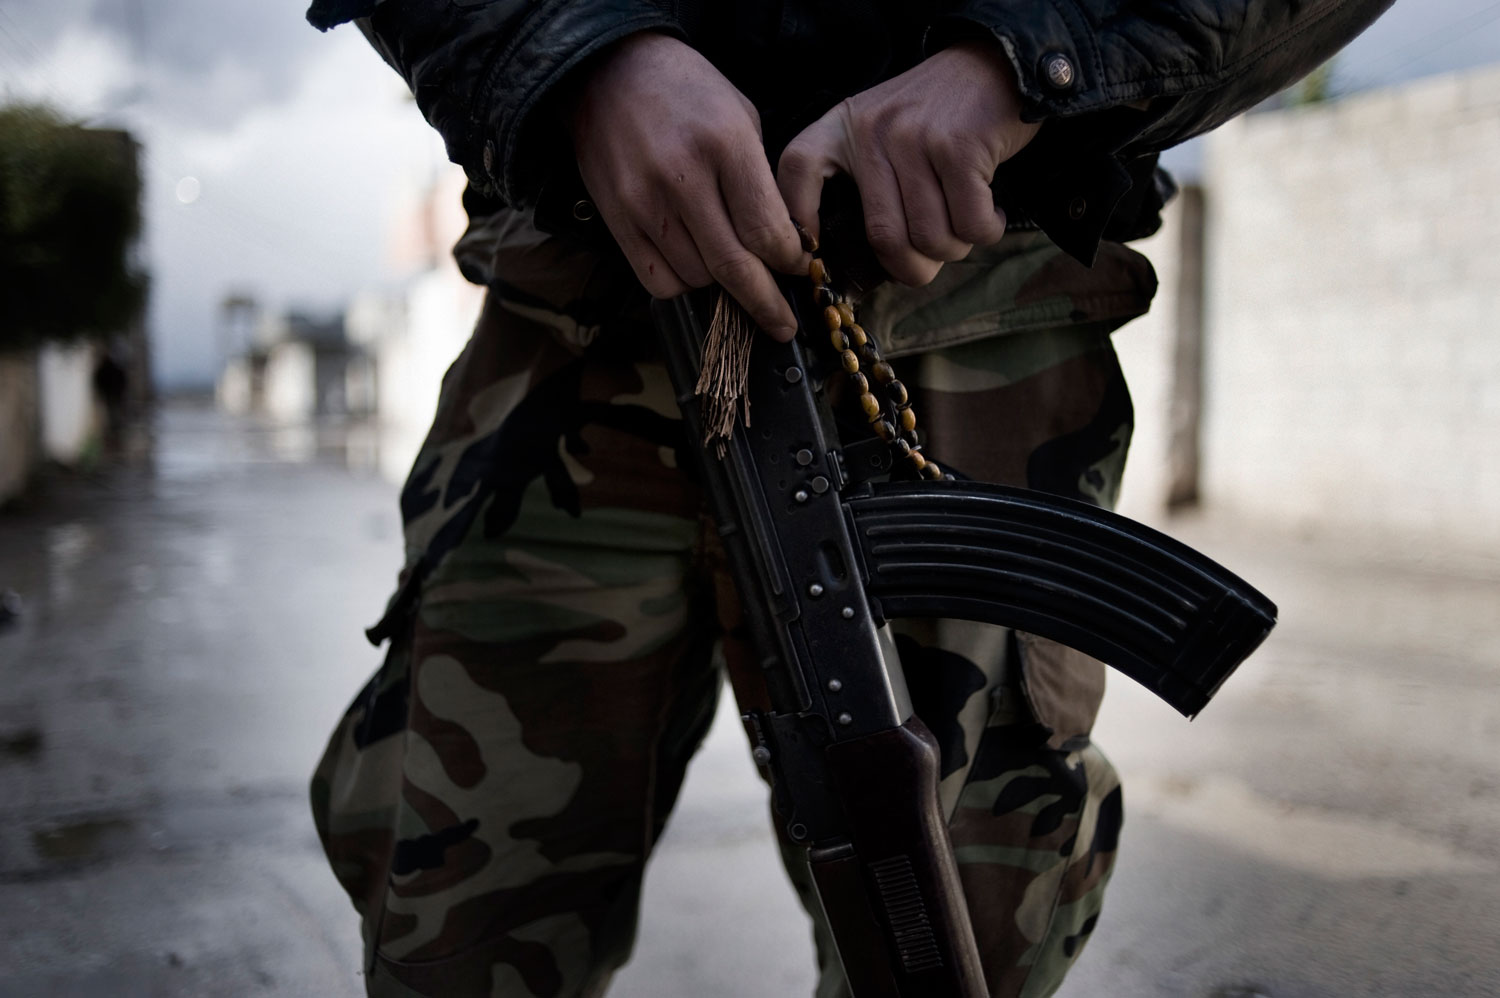 A member of the Free Syrian Army holds an AK-47 in Al Qsair. Jan. 27, 2012